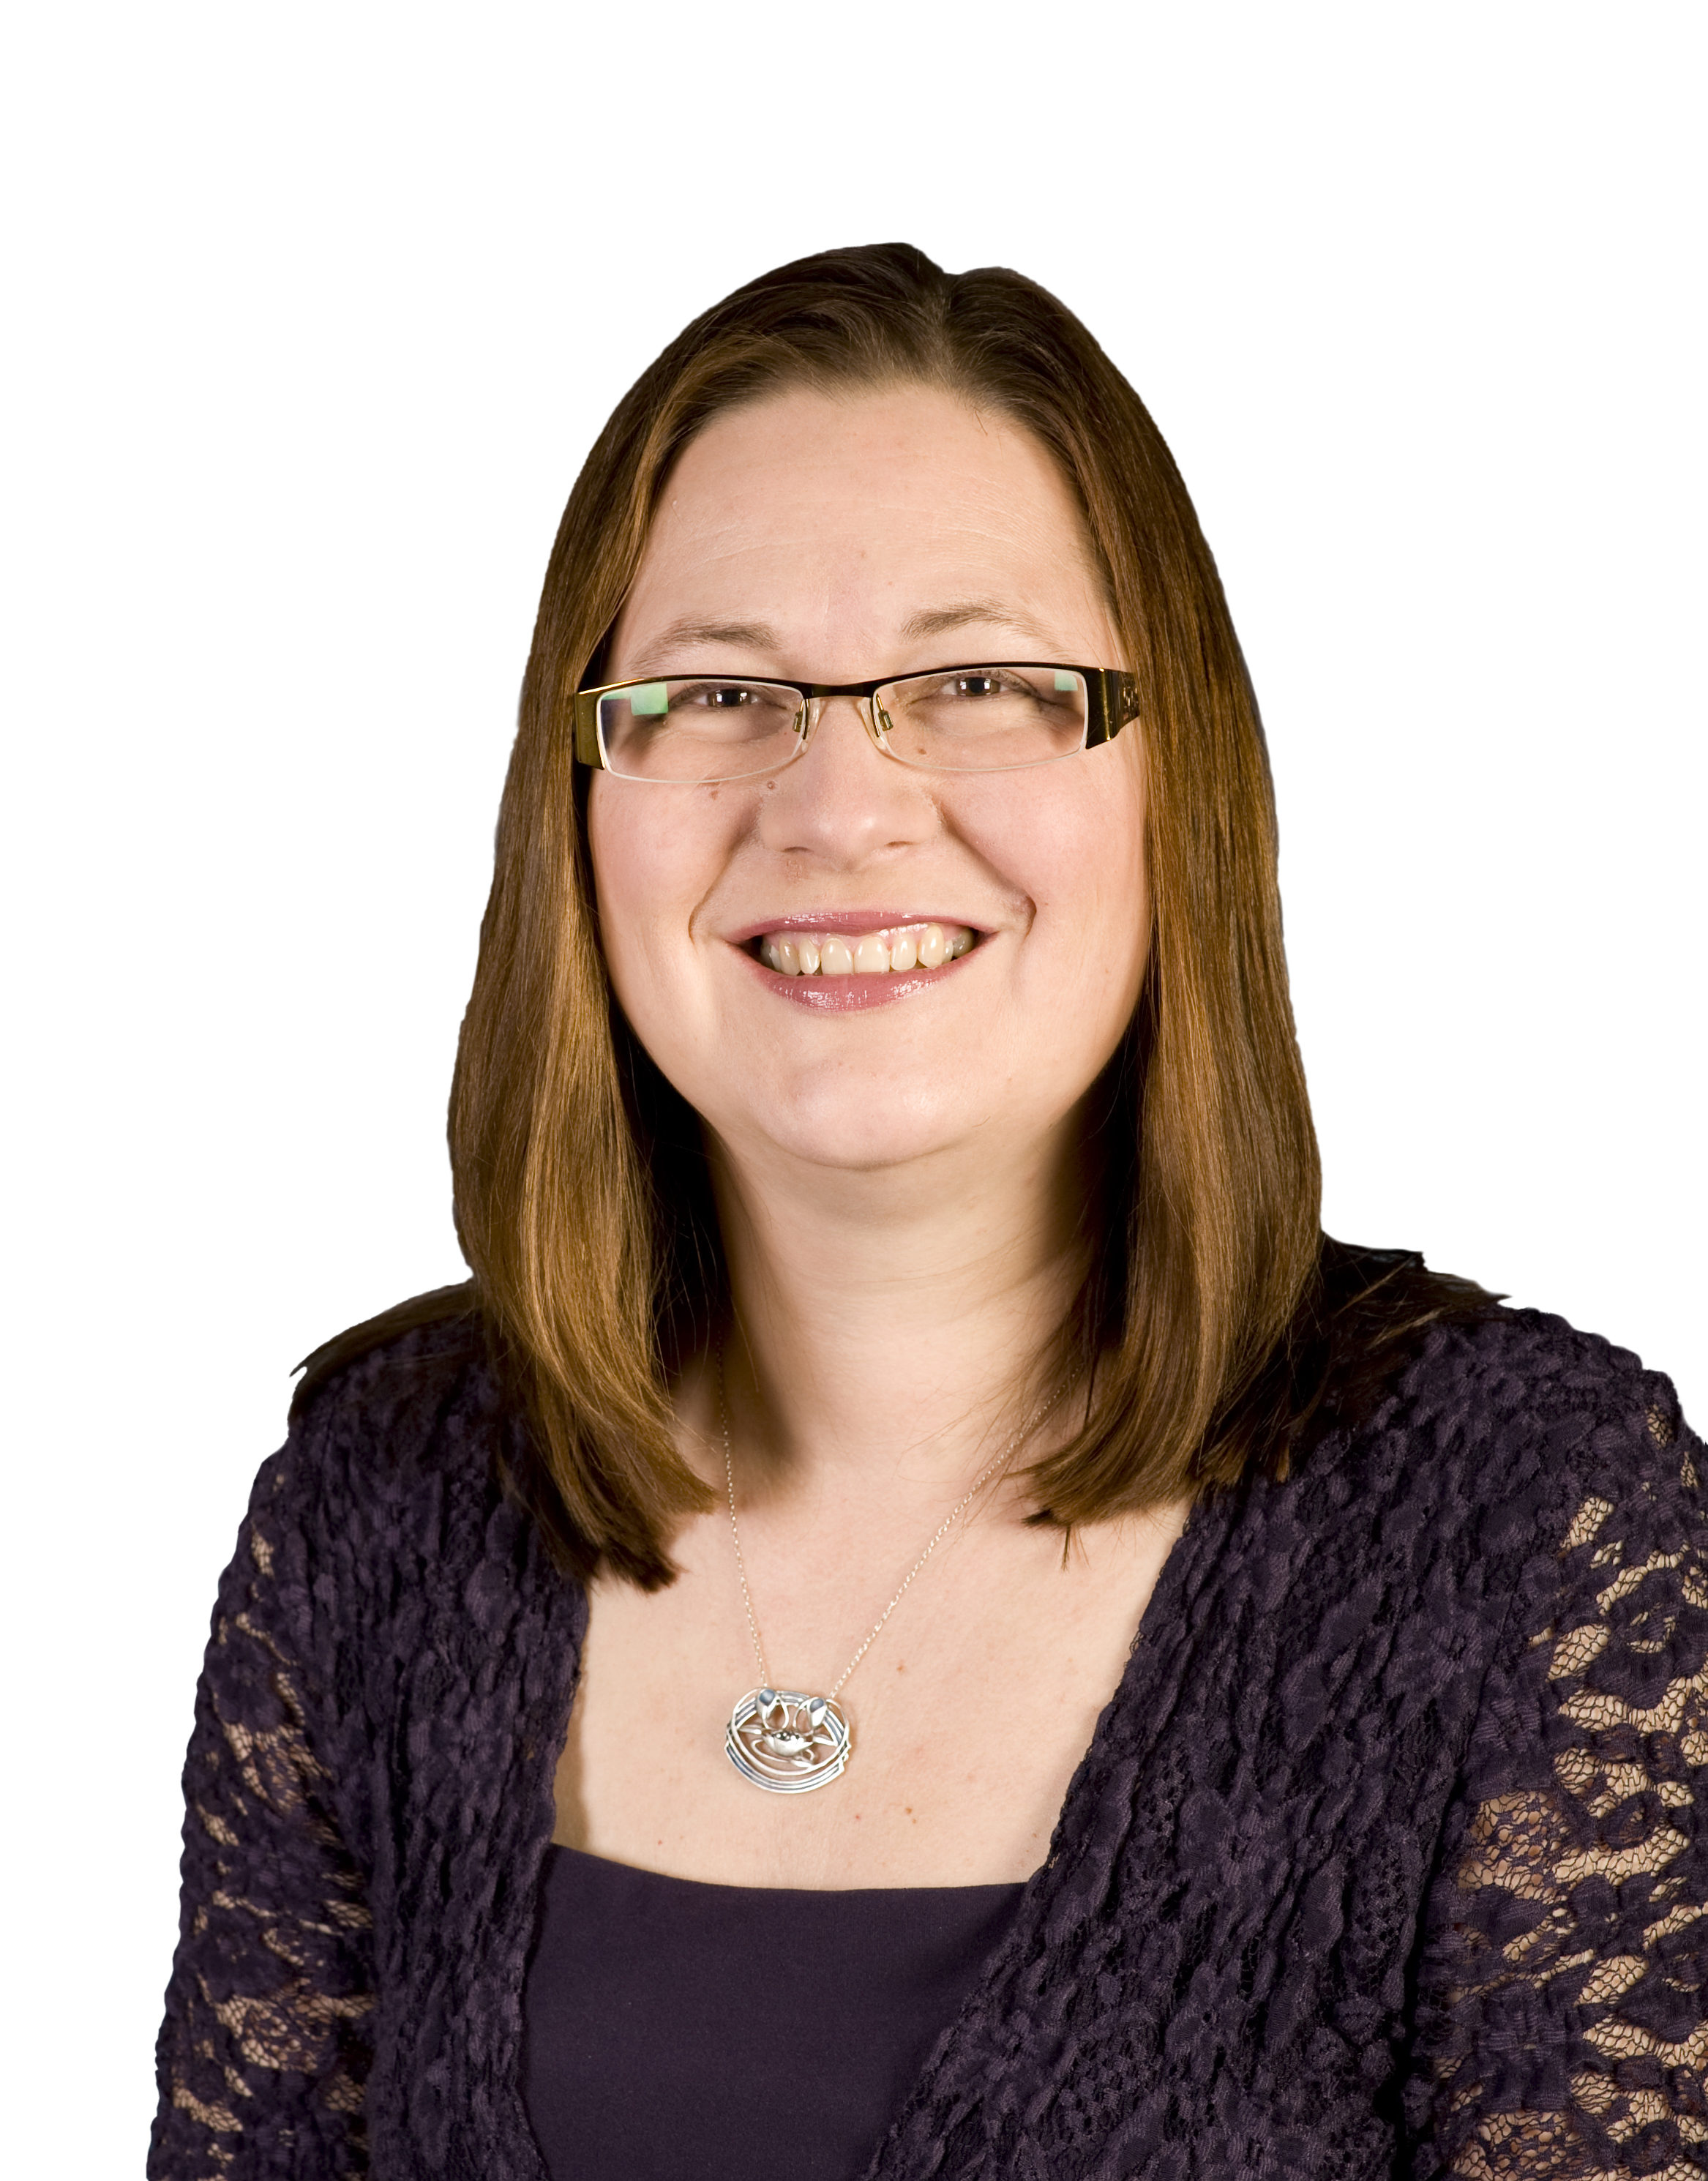 Kirsty Darwent - Chair of the Board